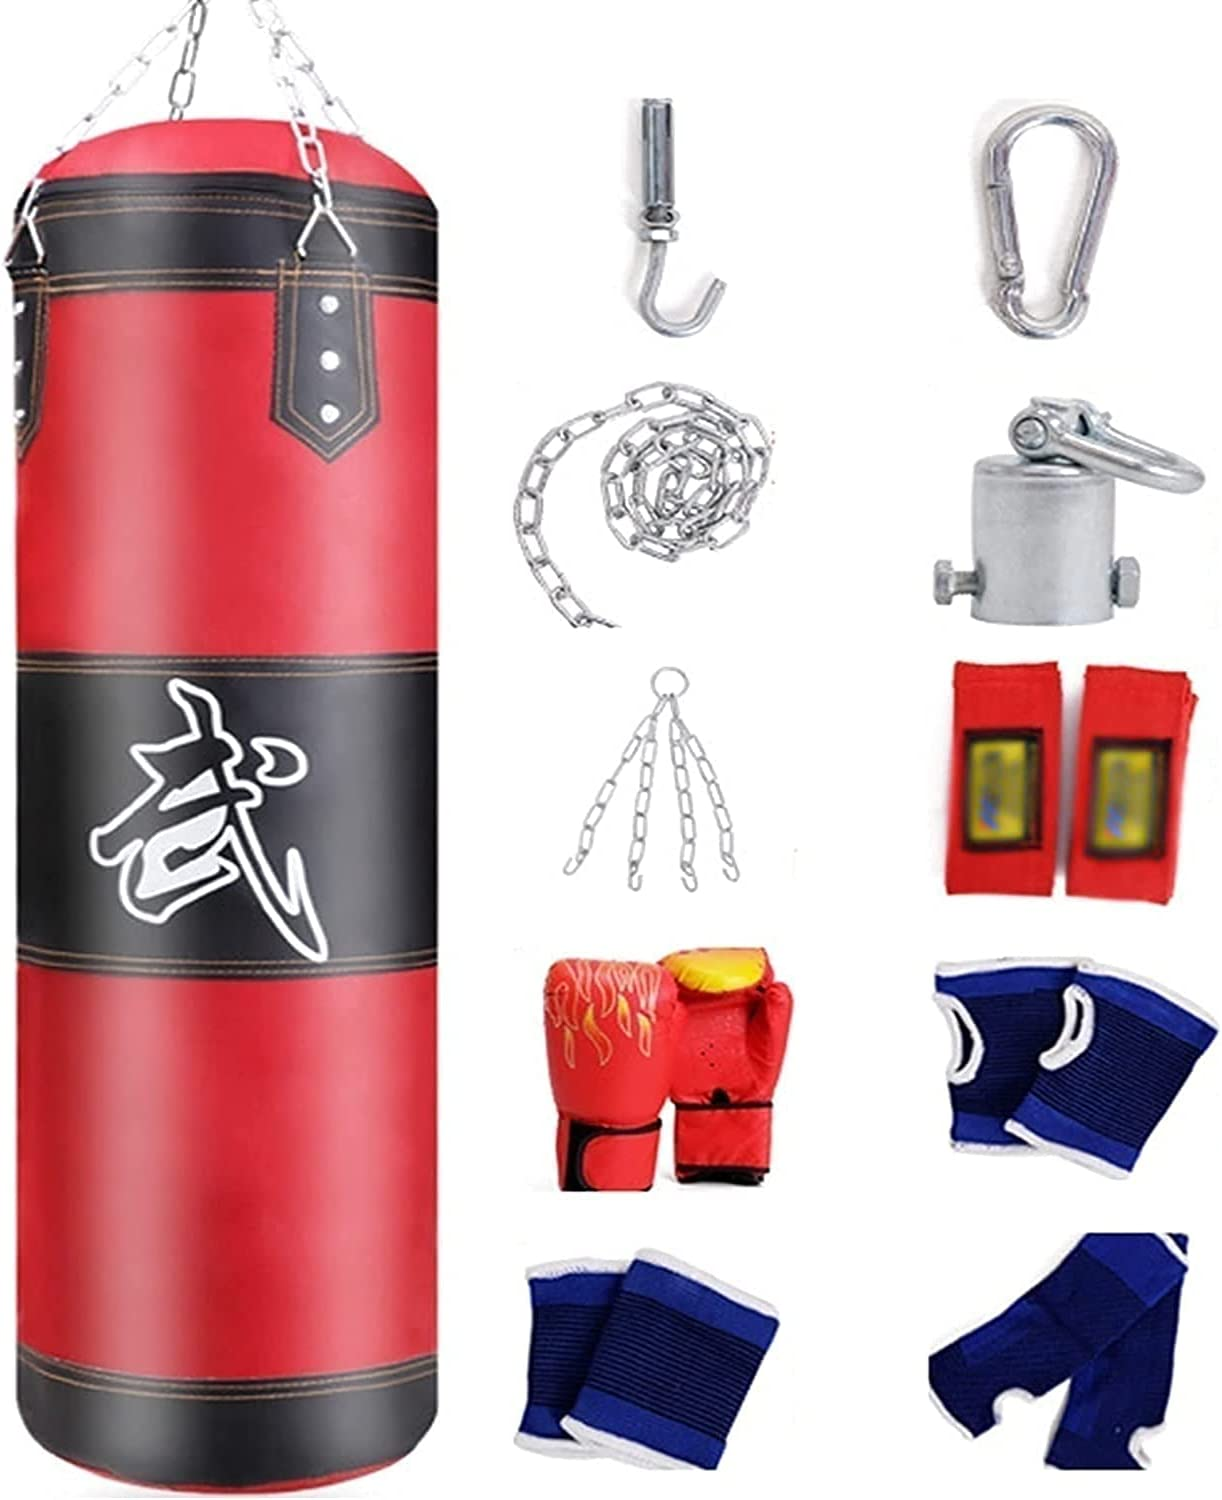 LIOYUHGTFY Boxing Bag Bombing new work Heavy Punching B Punch Bags for 100% quality warranty!